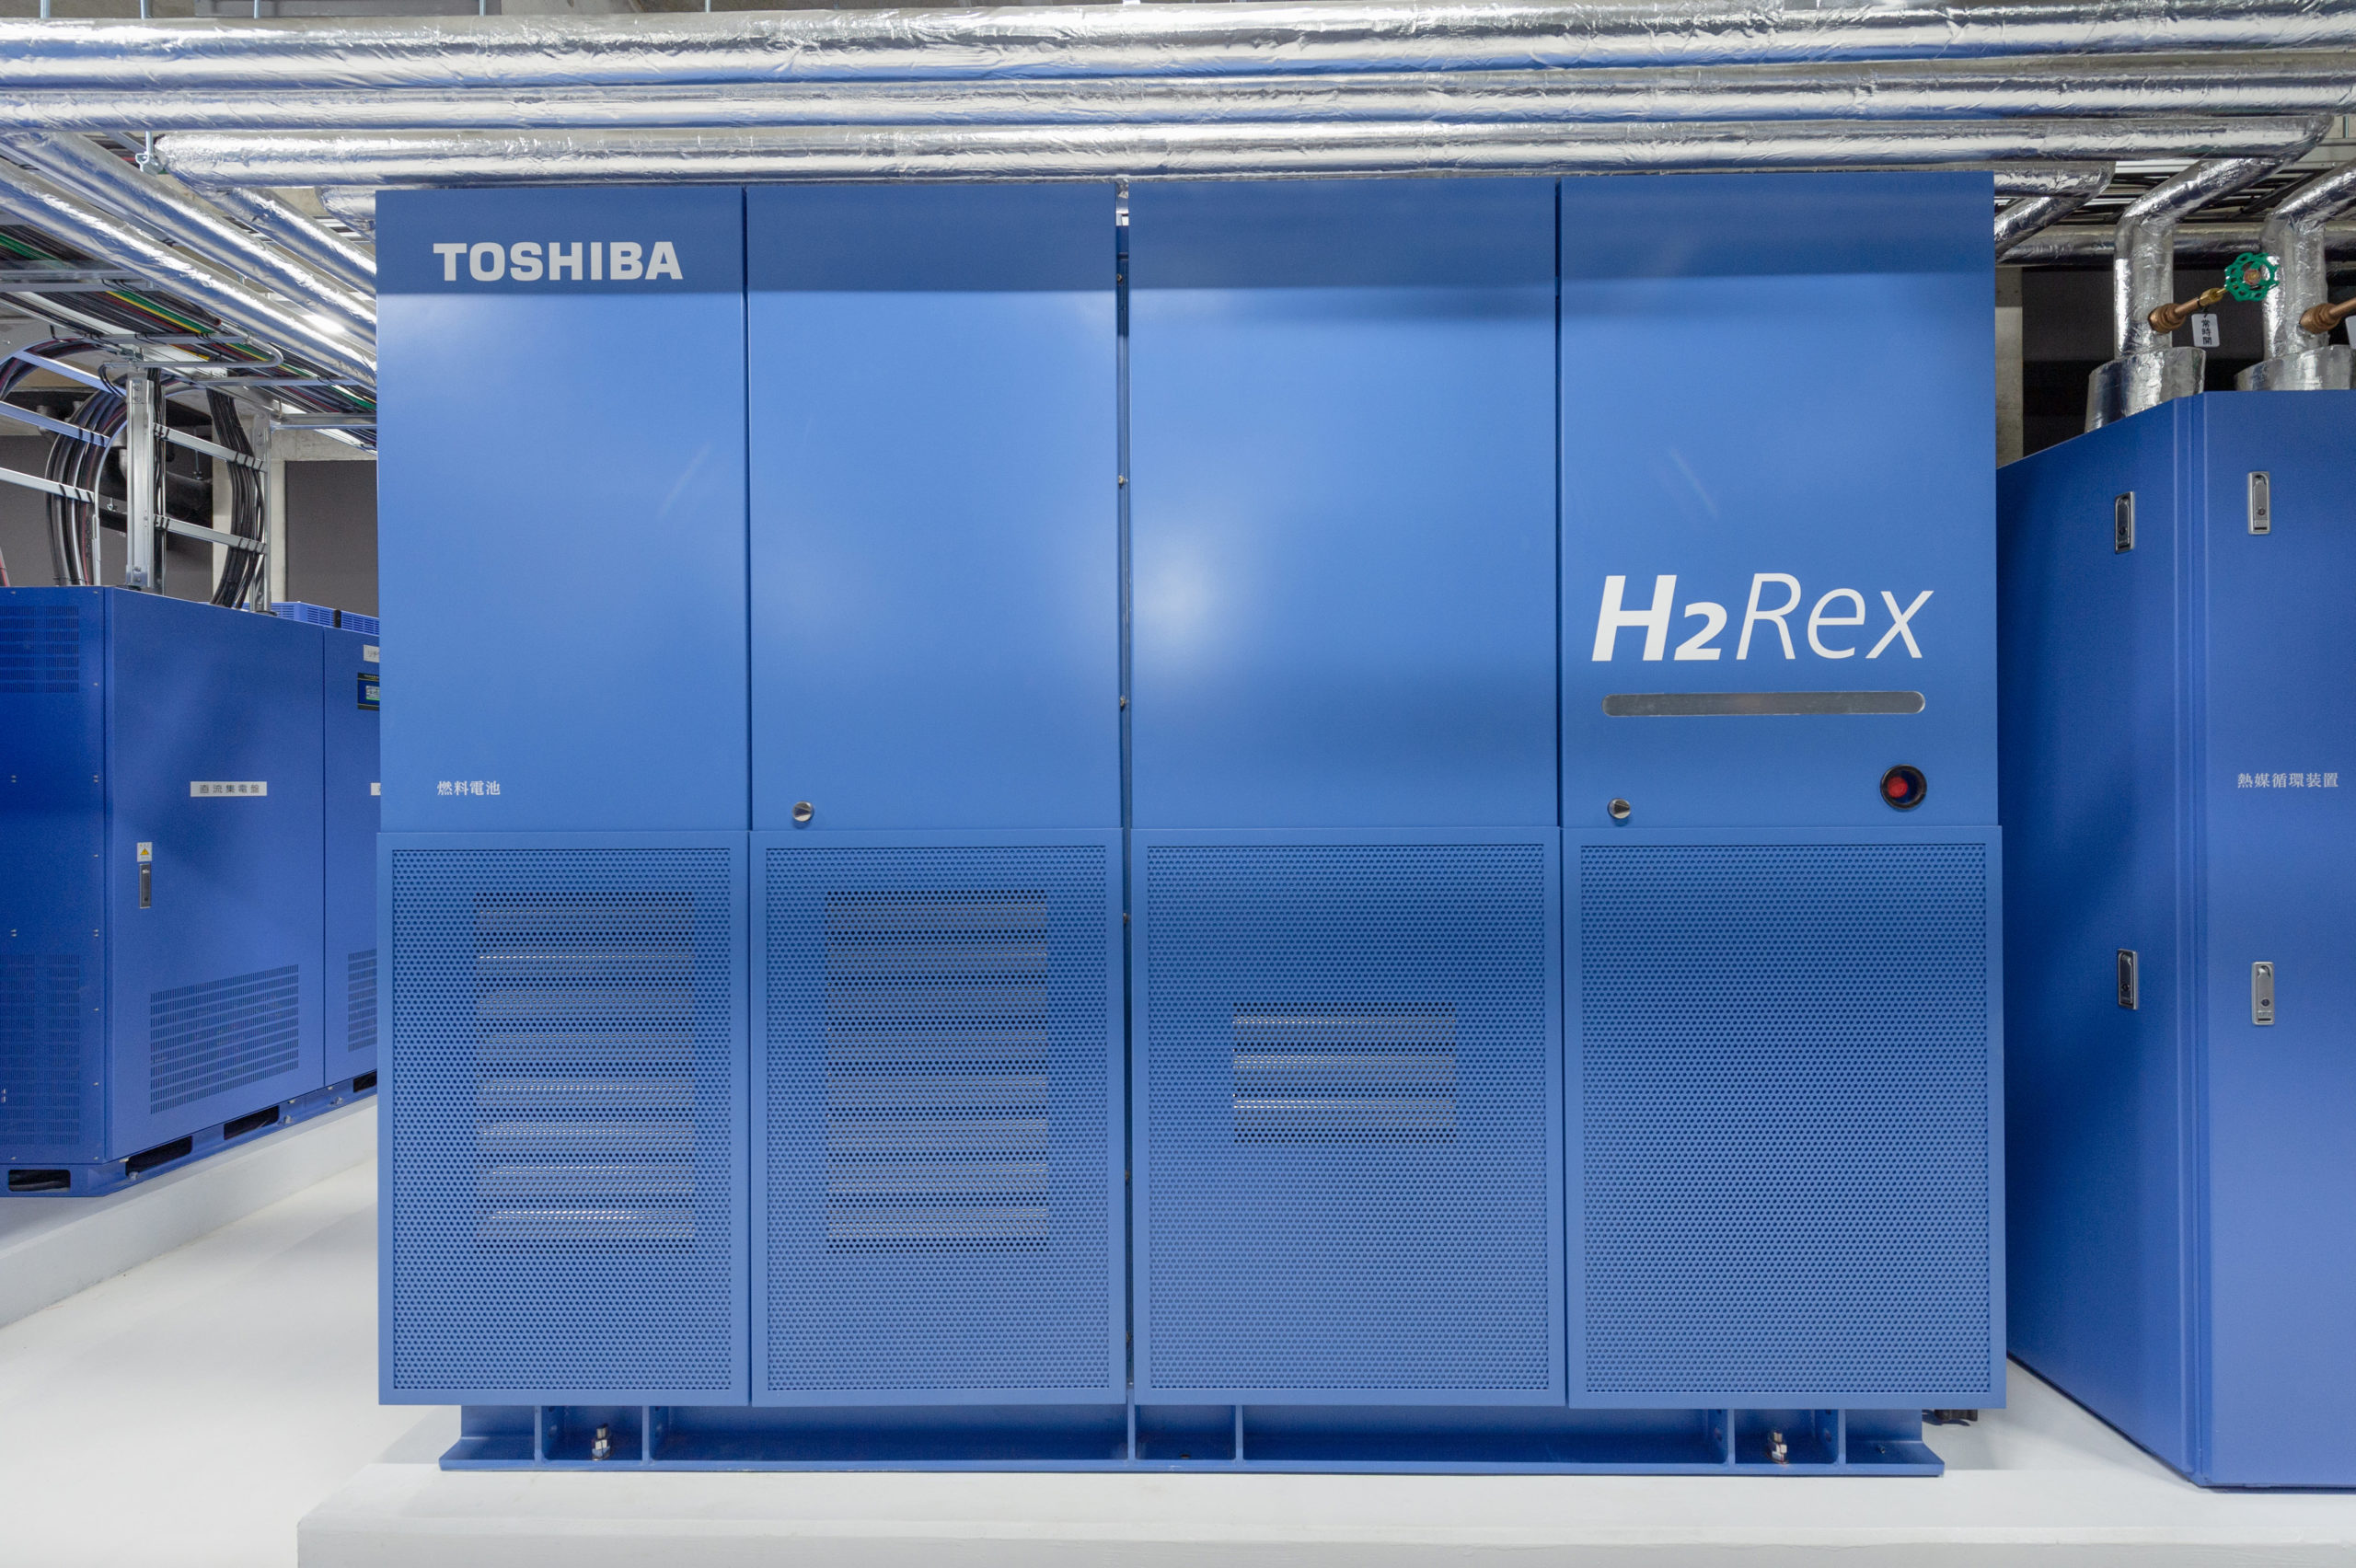 Fuel cells works, hydrogen, H2Rex, toshibas, energy, fuel cells